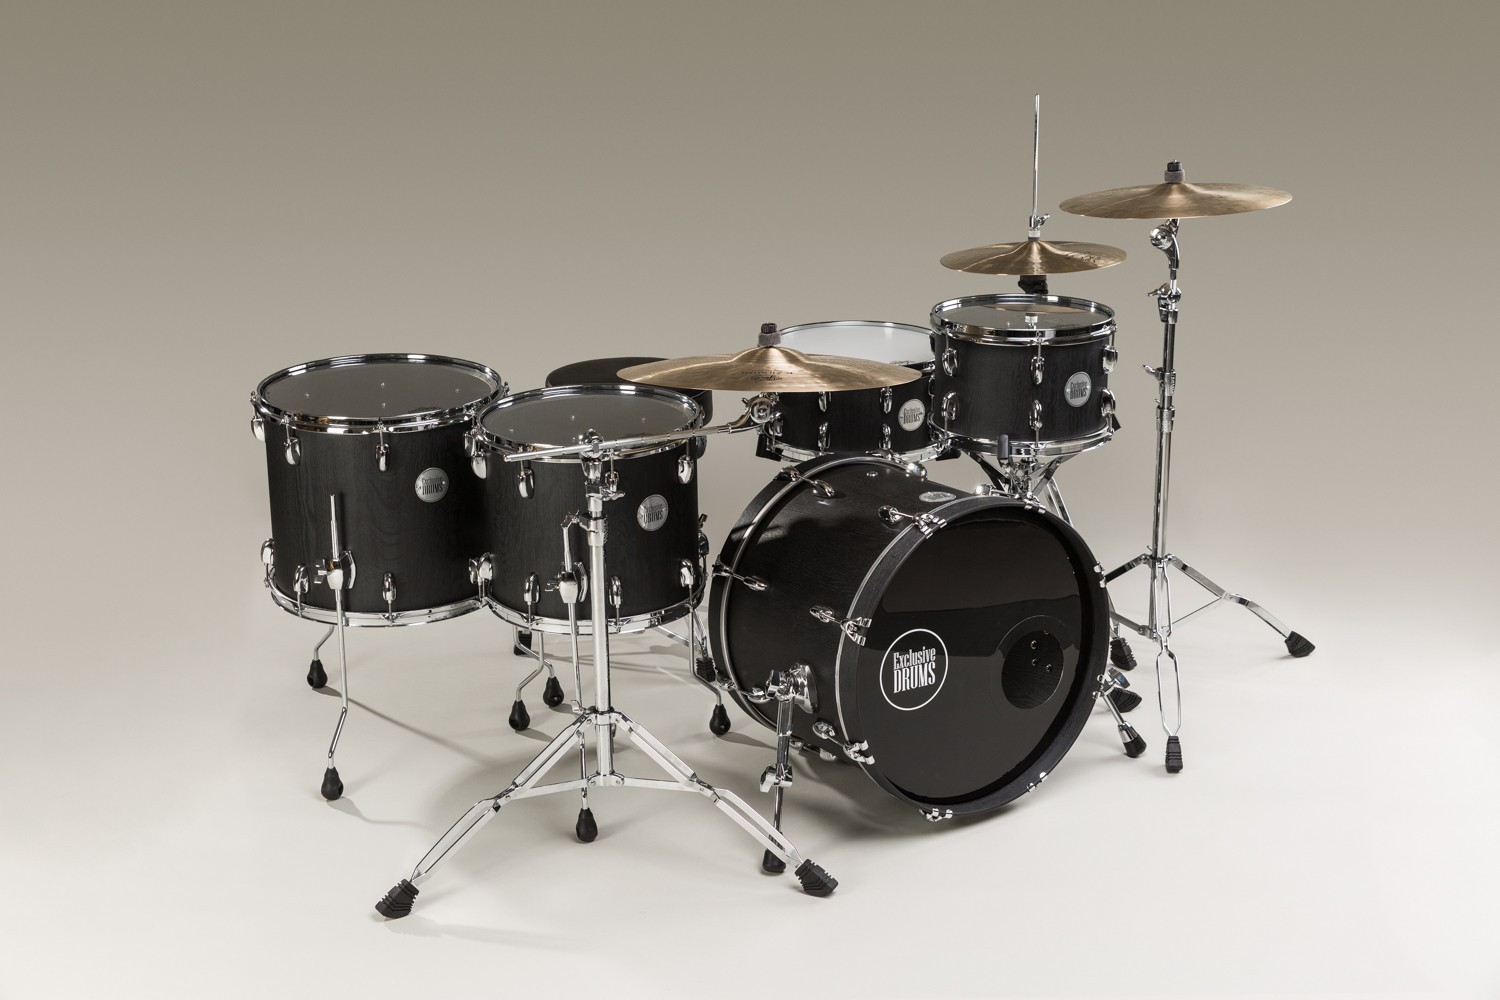 Oak drum set